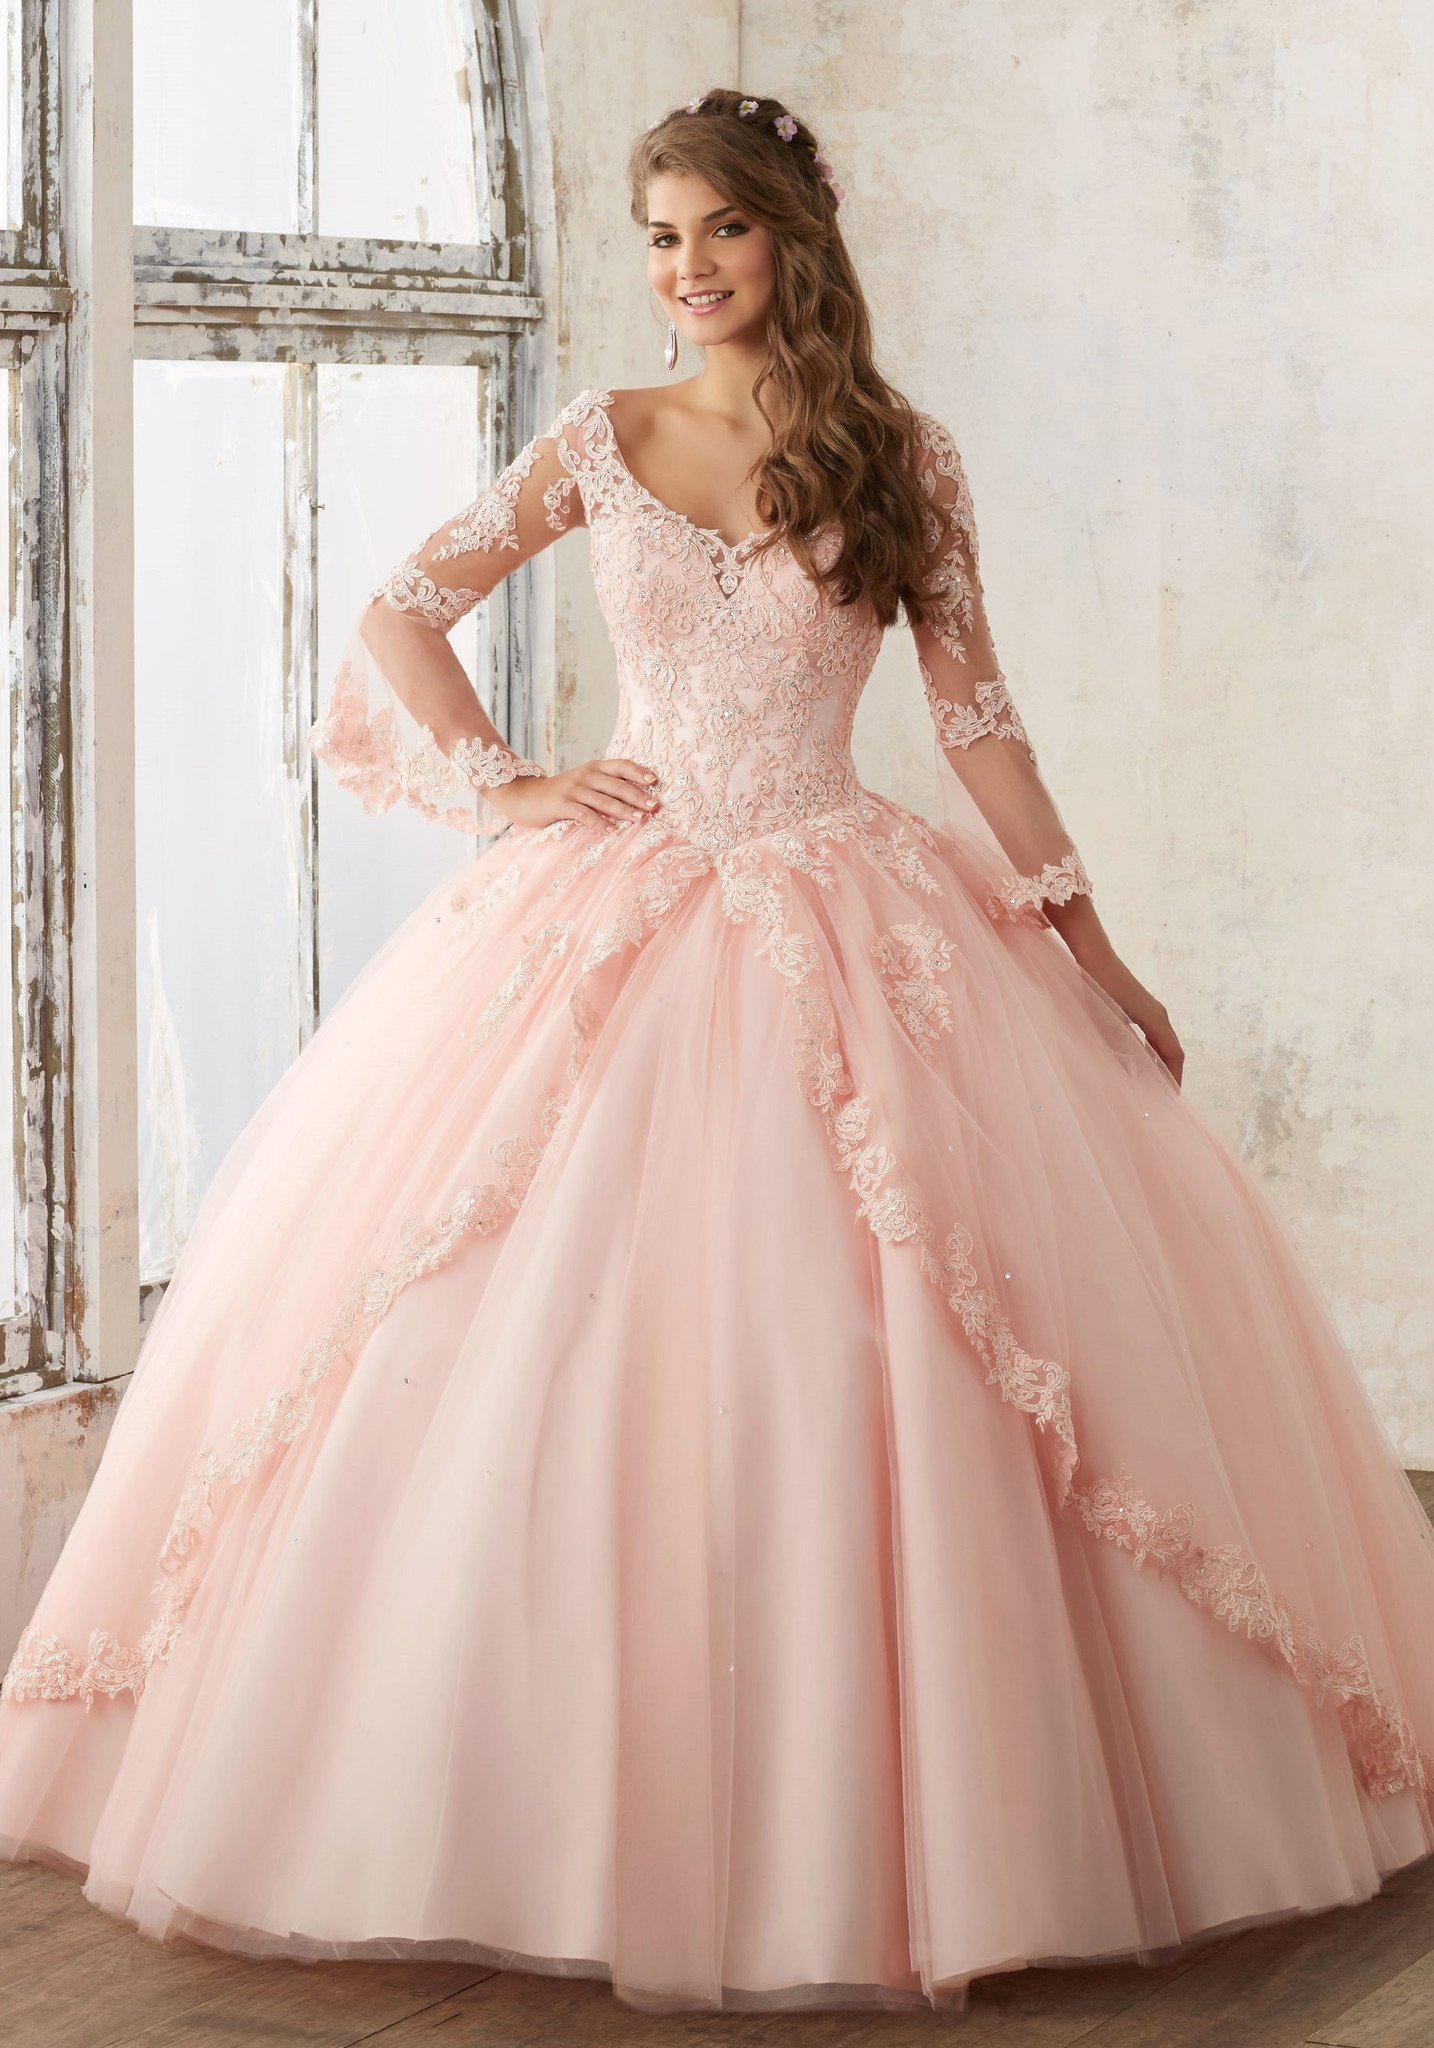 Mori Lee Valencia Quinceanera Dress 60015 | Quince años, vestidos XV ...